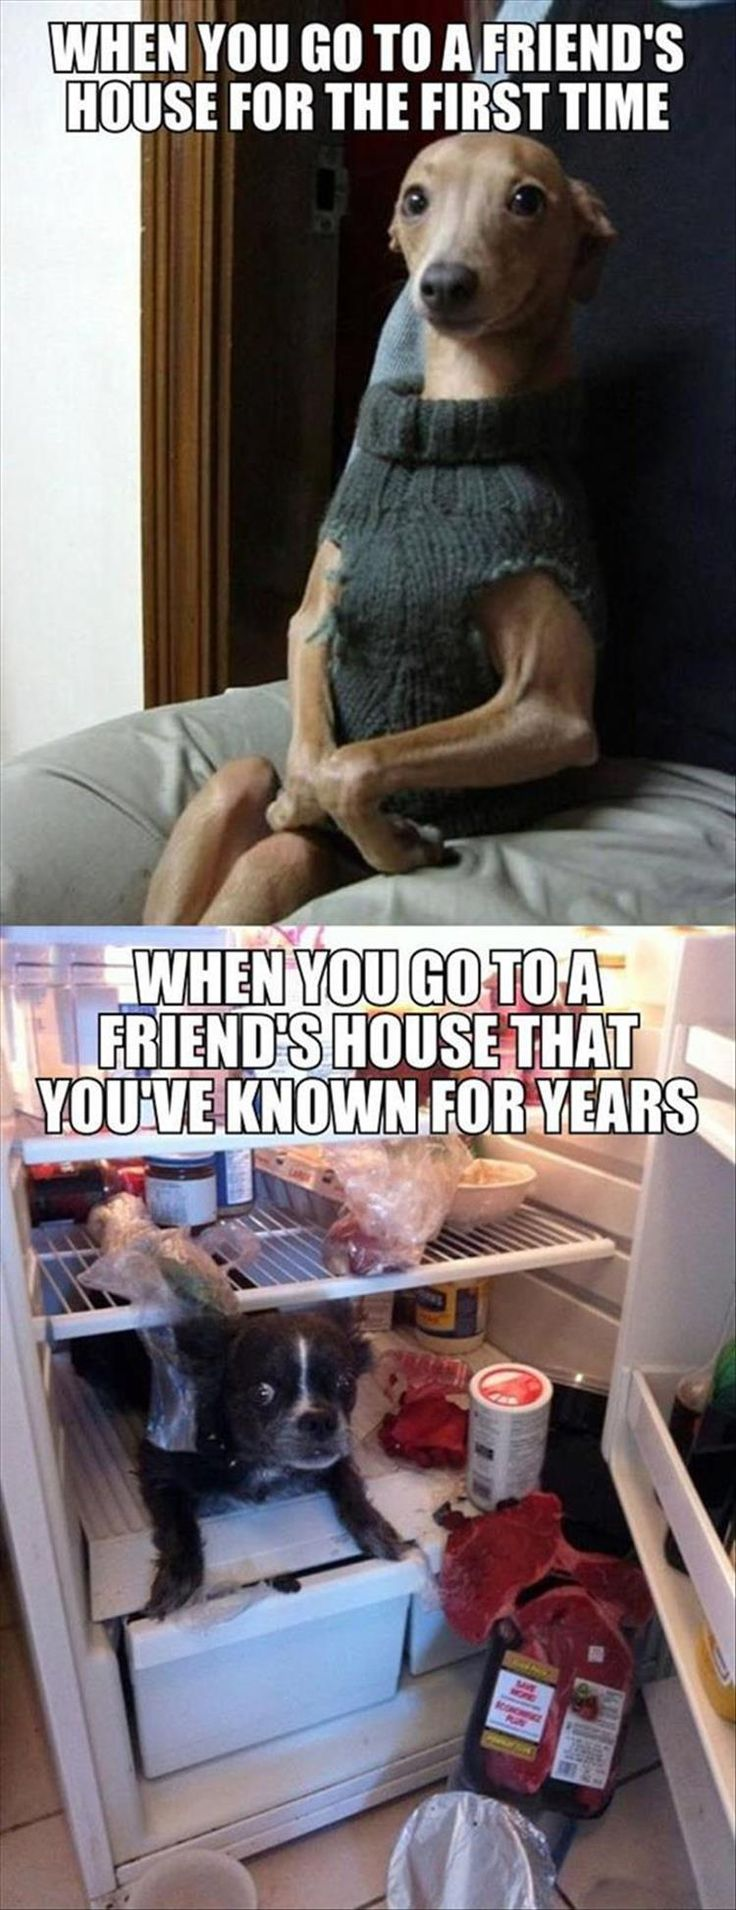 Totally me. Not too long ago I went to a friend's house for the firt time and was exactly like the top picture. Too true...